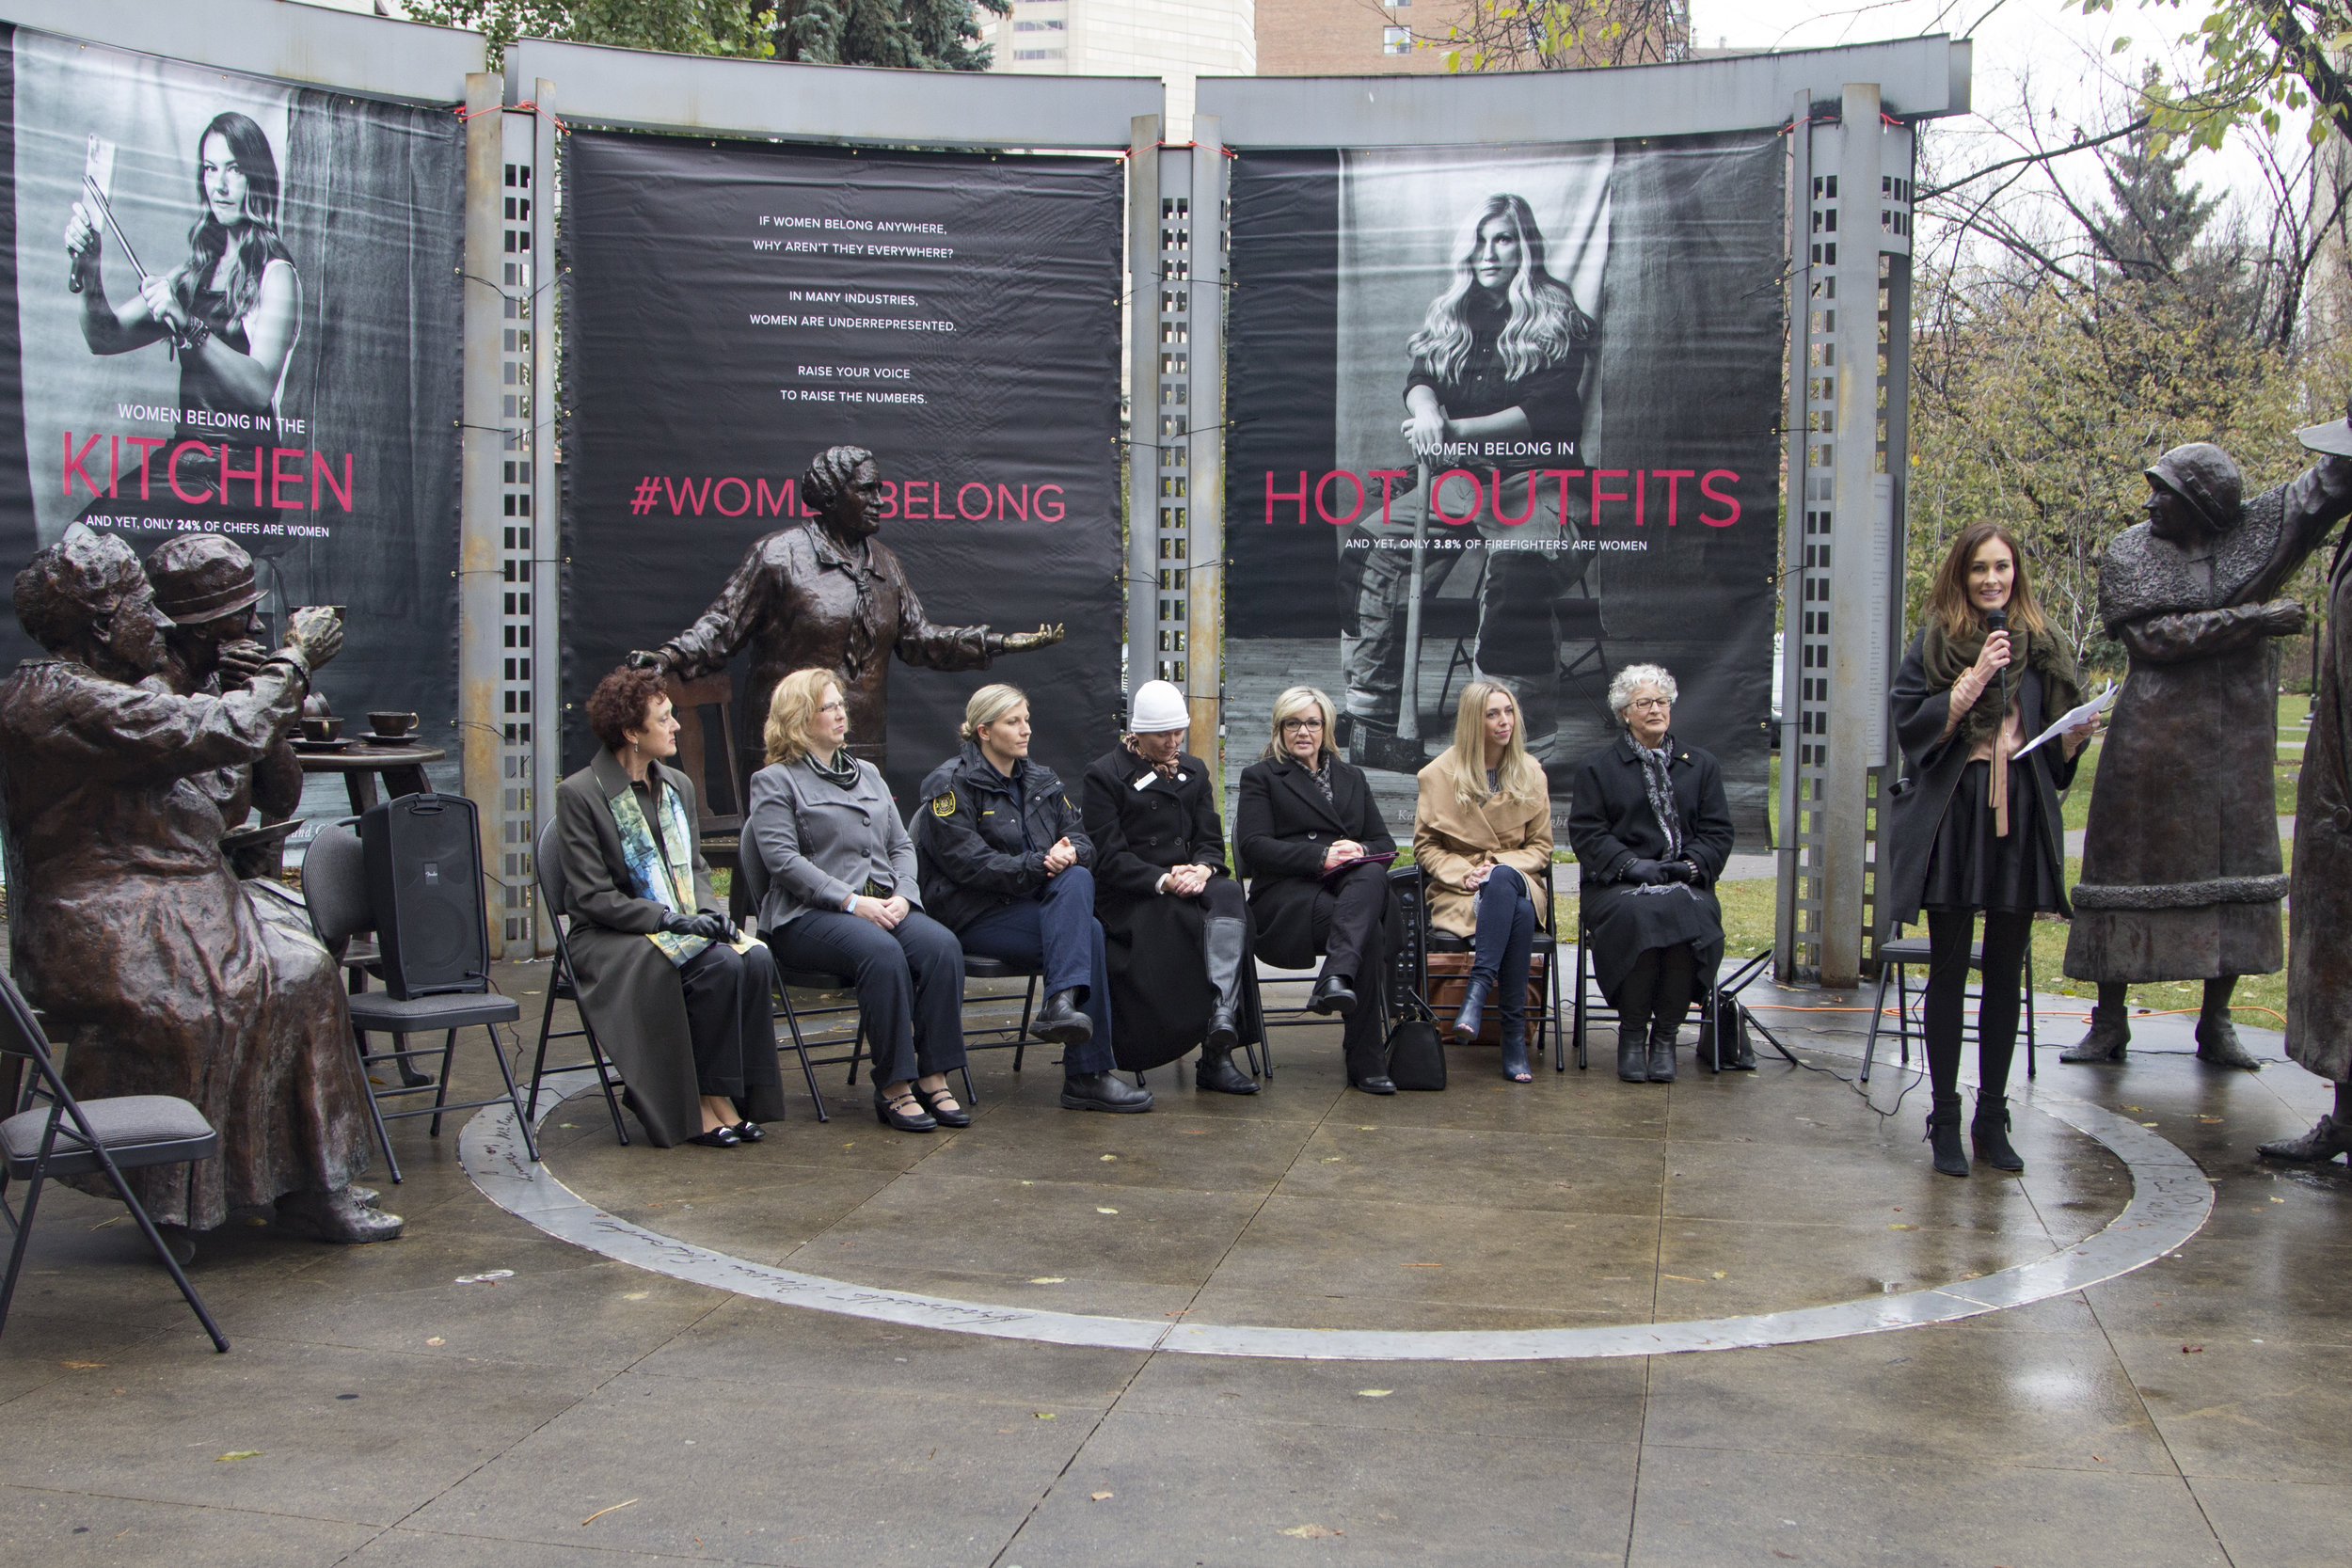 Persons Day event unveiling #WomenBelong campaign at Olympic Plaza in Calgary on Oct 18, 2016